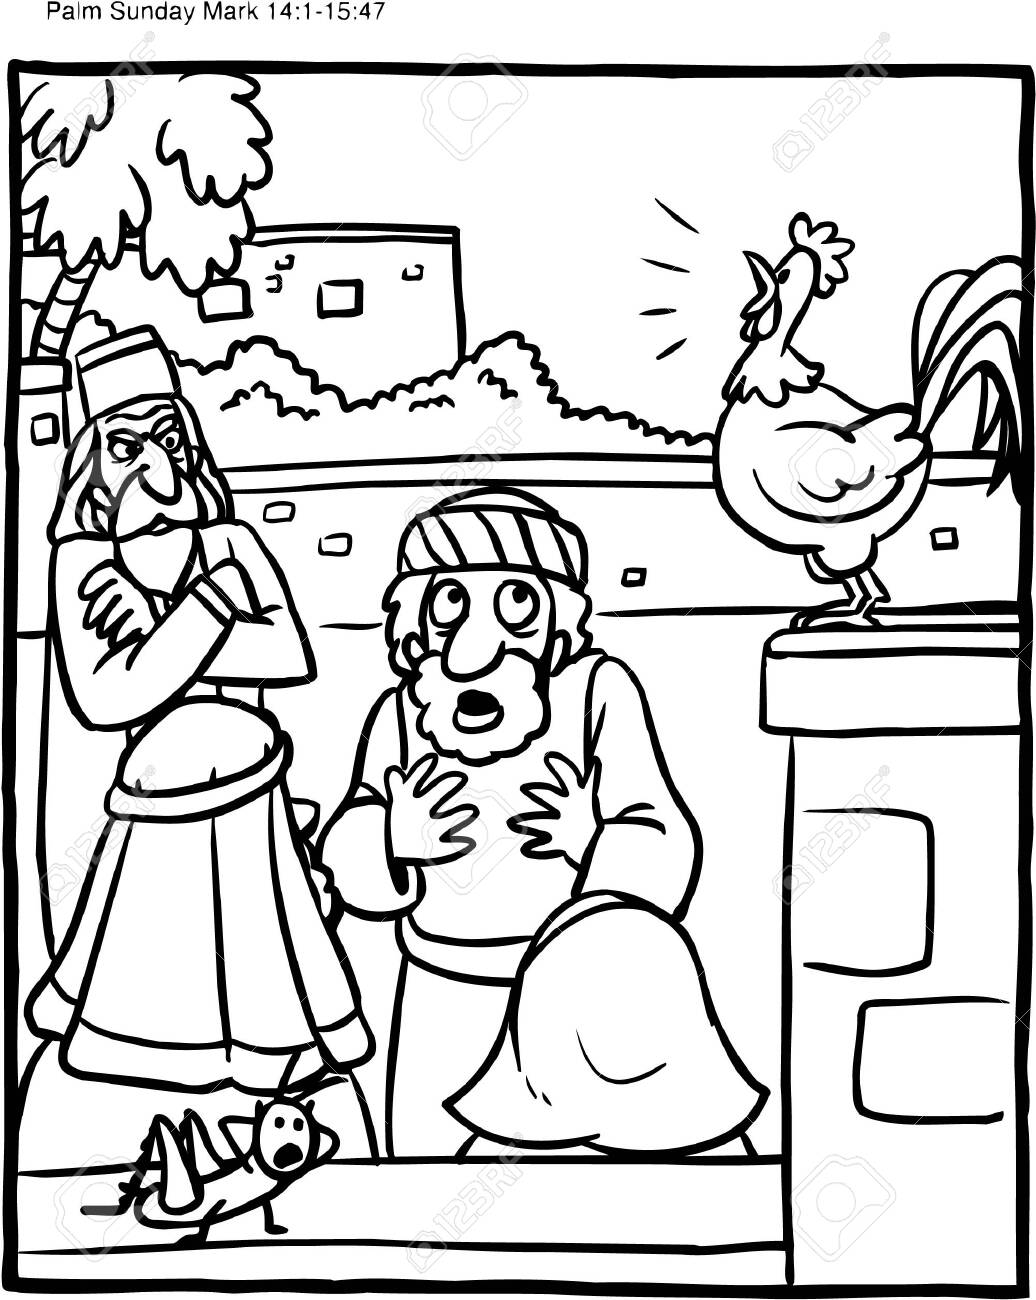 Coloring Page Of Rooster And Peter Denying Jesus Royalty Free Cliparts Vectors And Stock Illustration Image 126874039